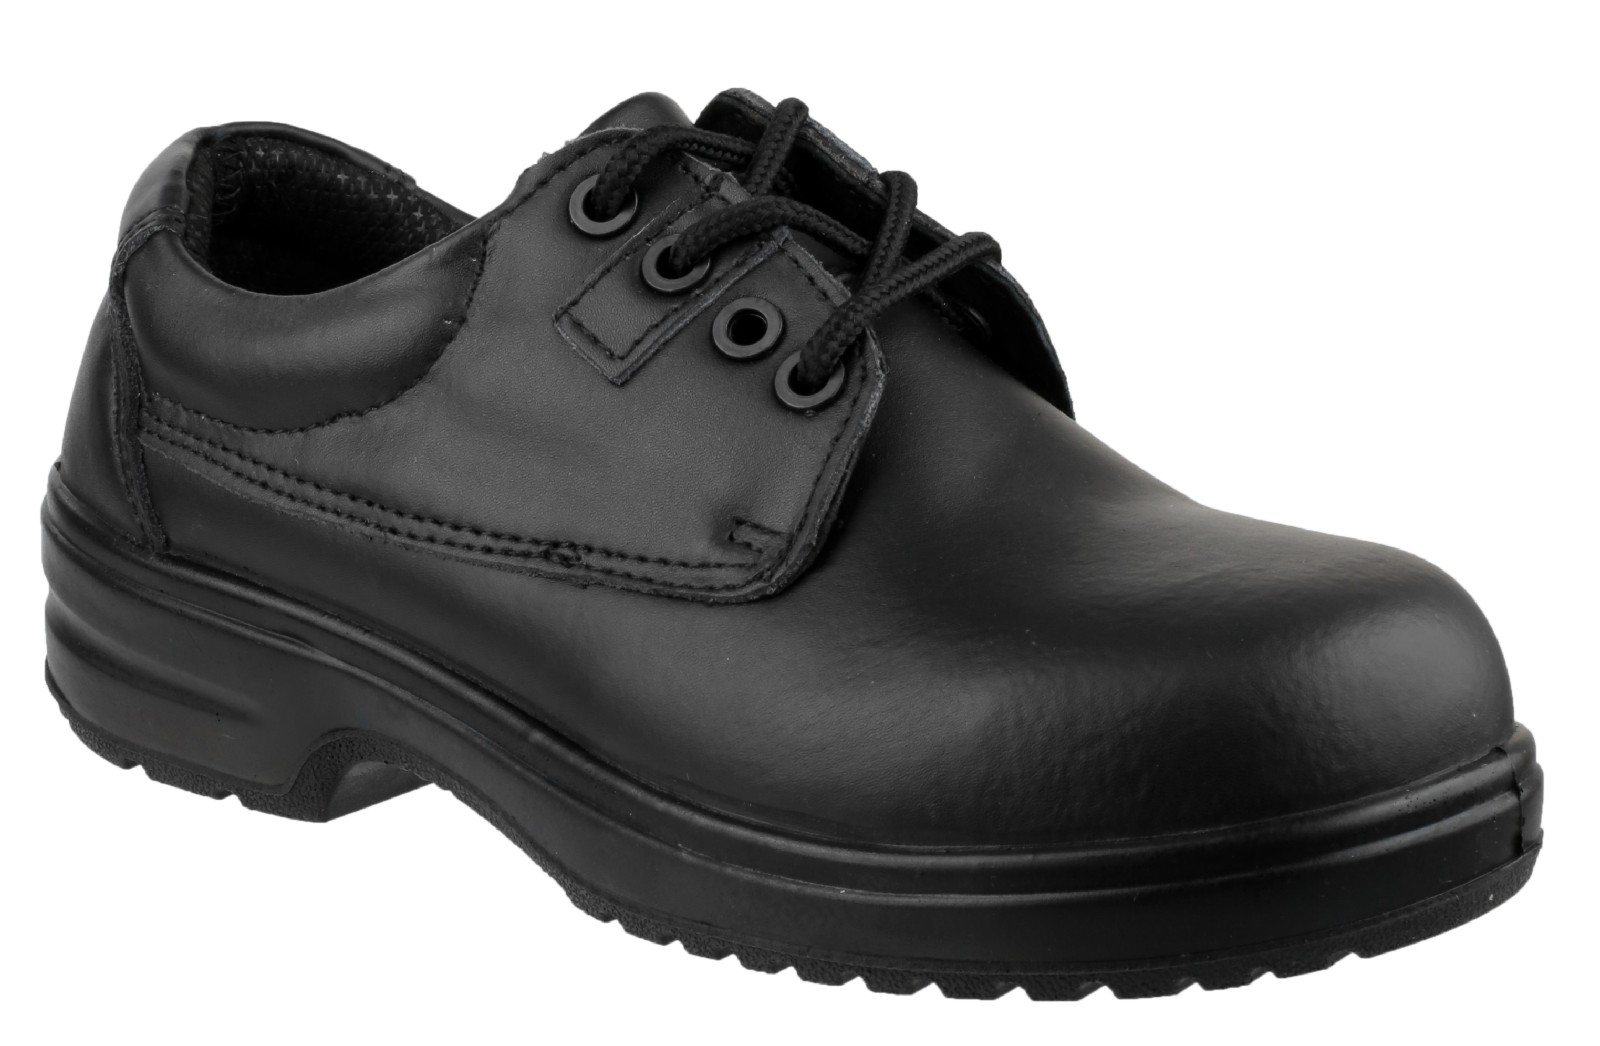 FS121C Ladies Safety Shoe